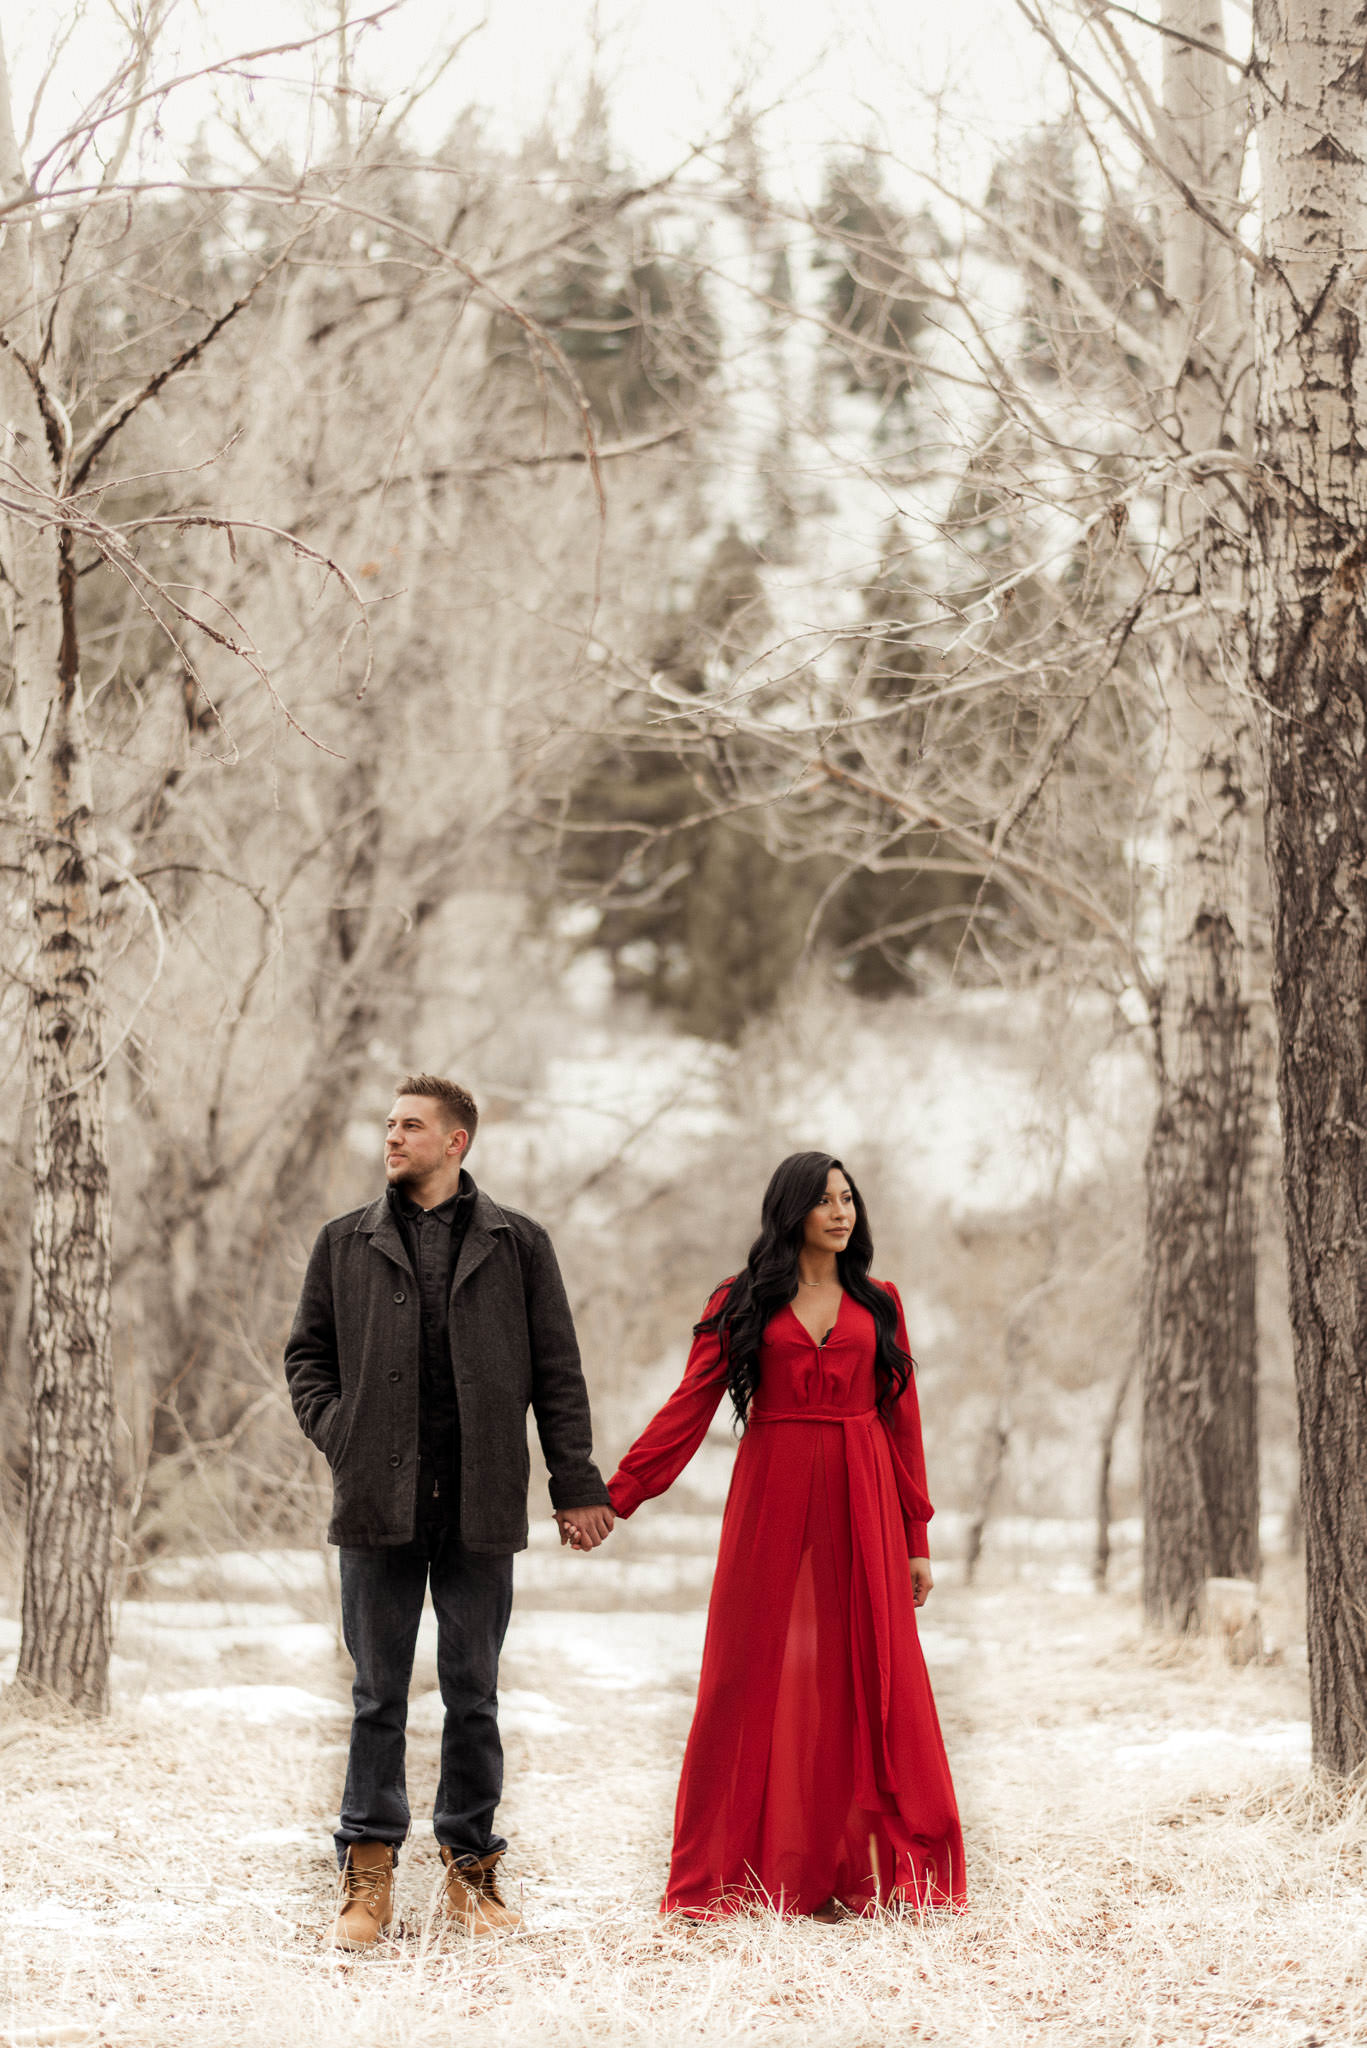 sandra-ryan-colorado-winter-snow-engagement-couples-valentines-red-houston-photographer-sm-31.jpg